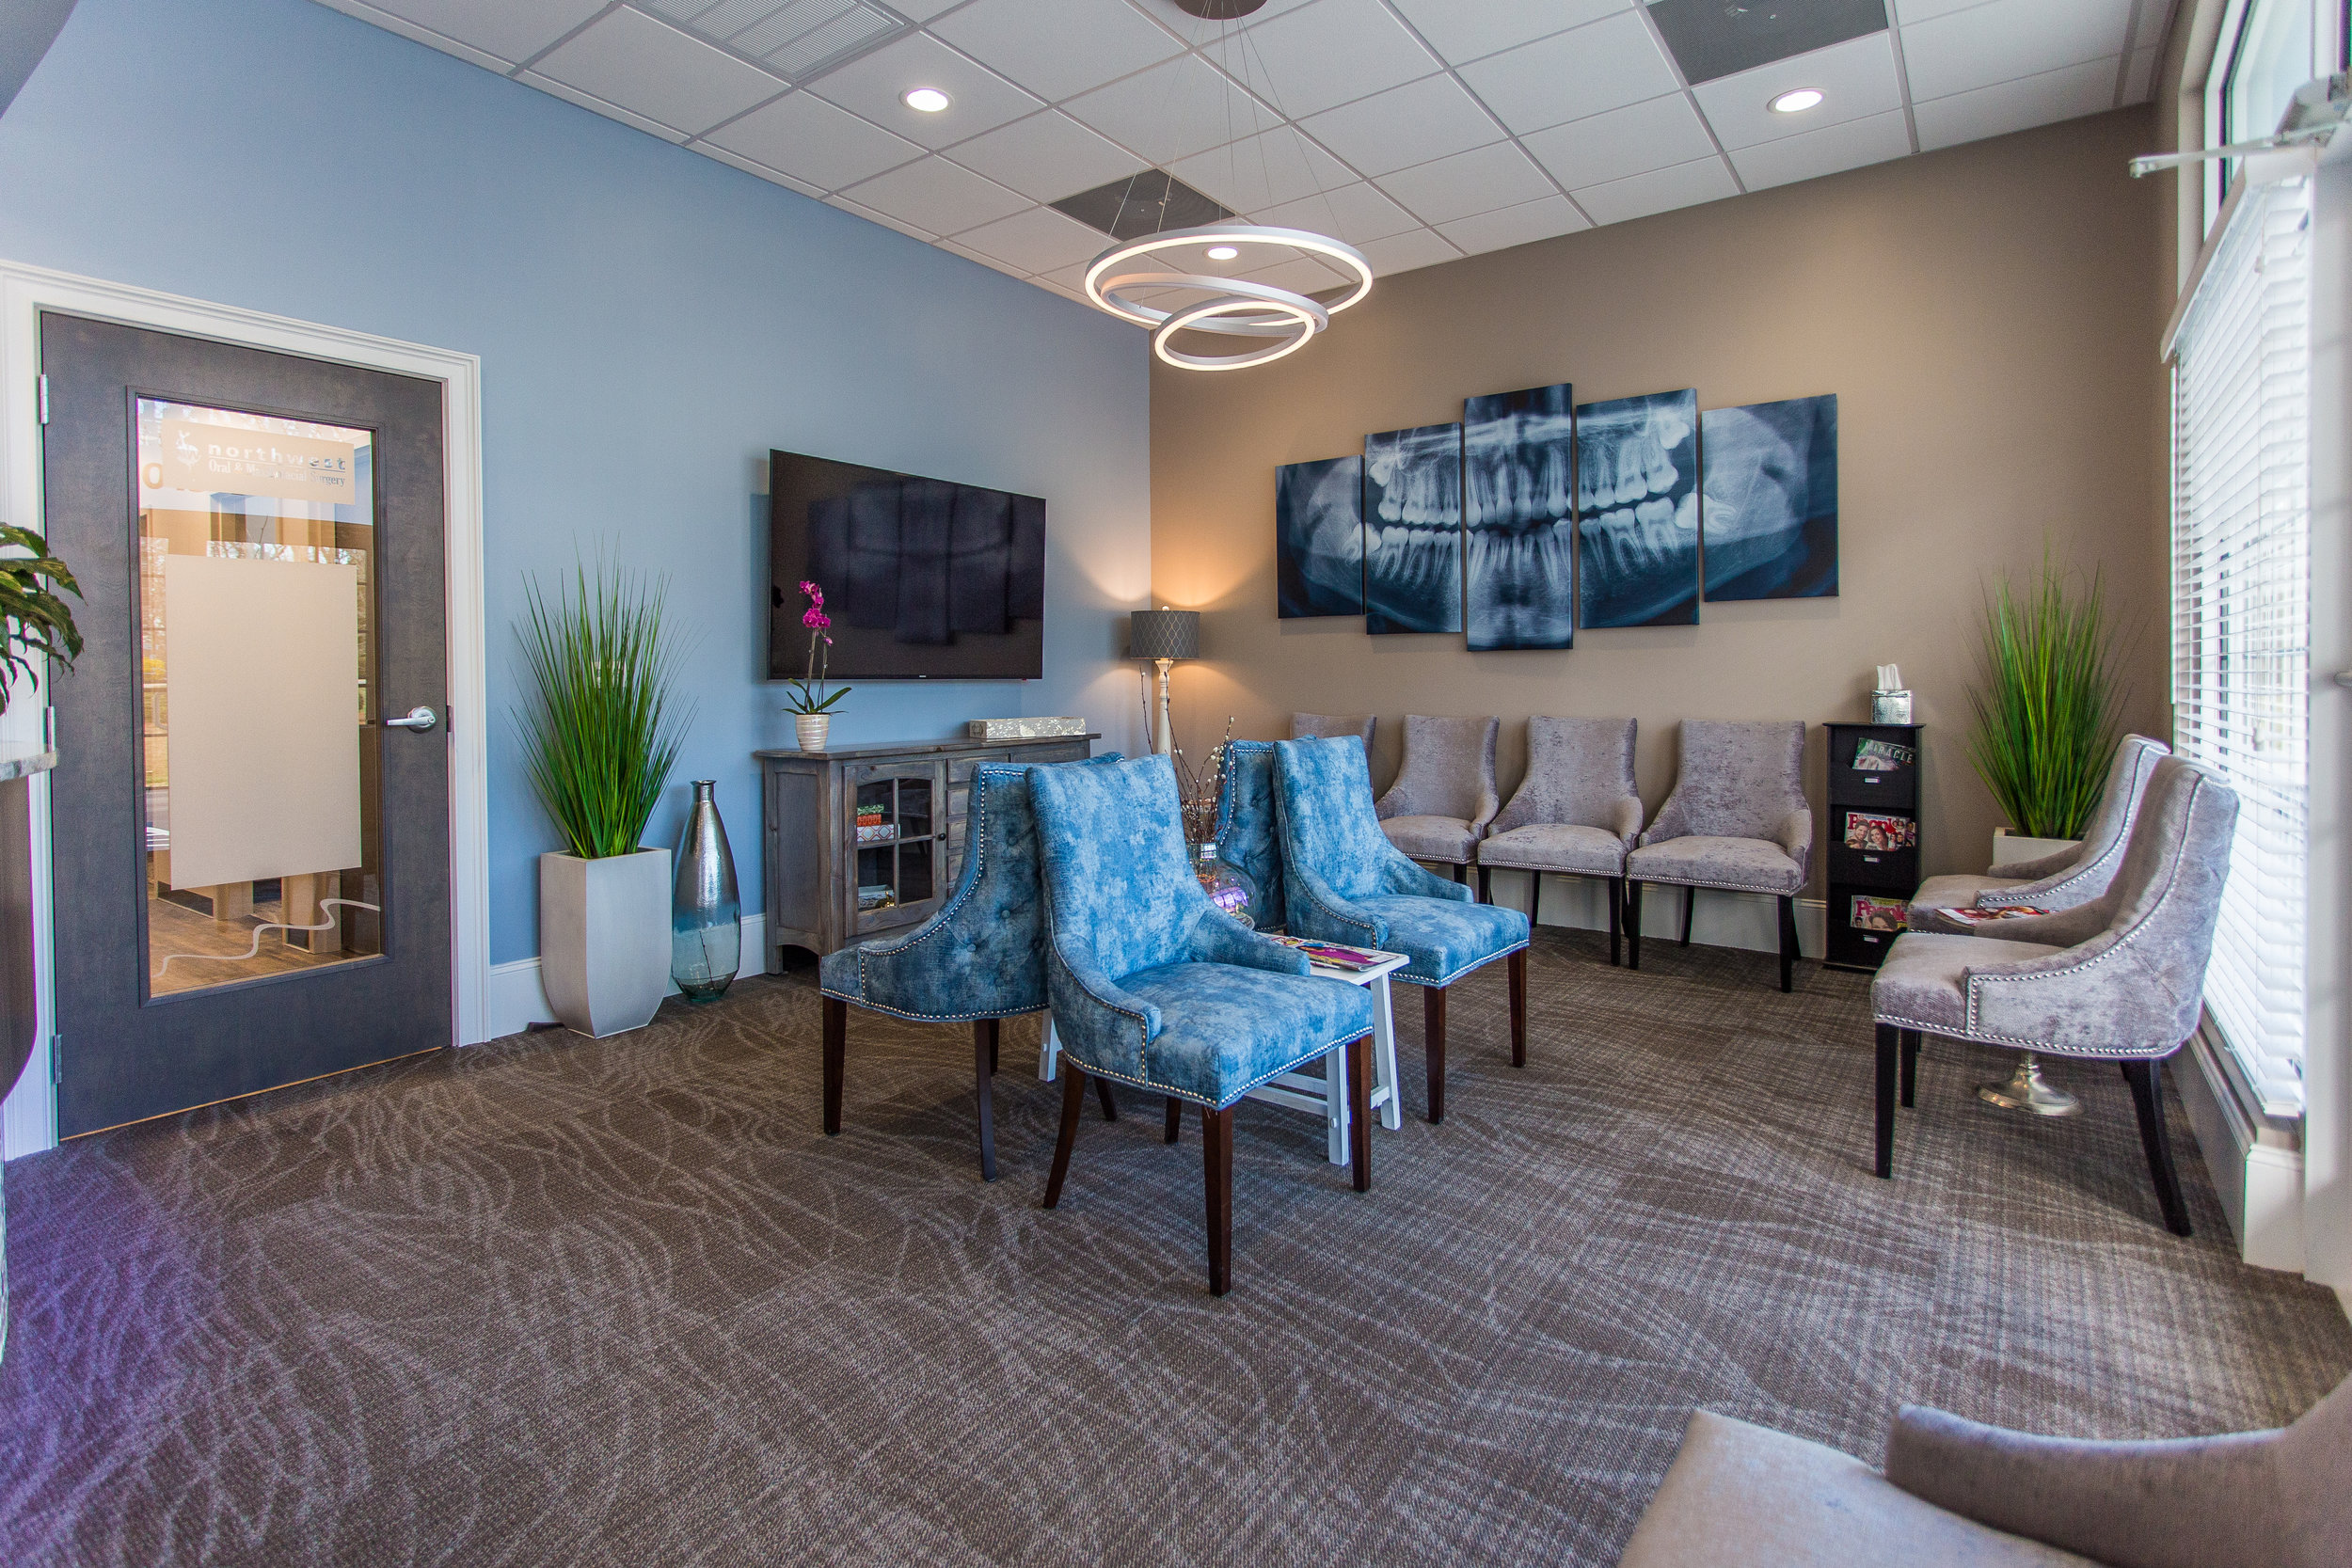 A nicely designed, clean lobby for guests to relax in while they wait.